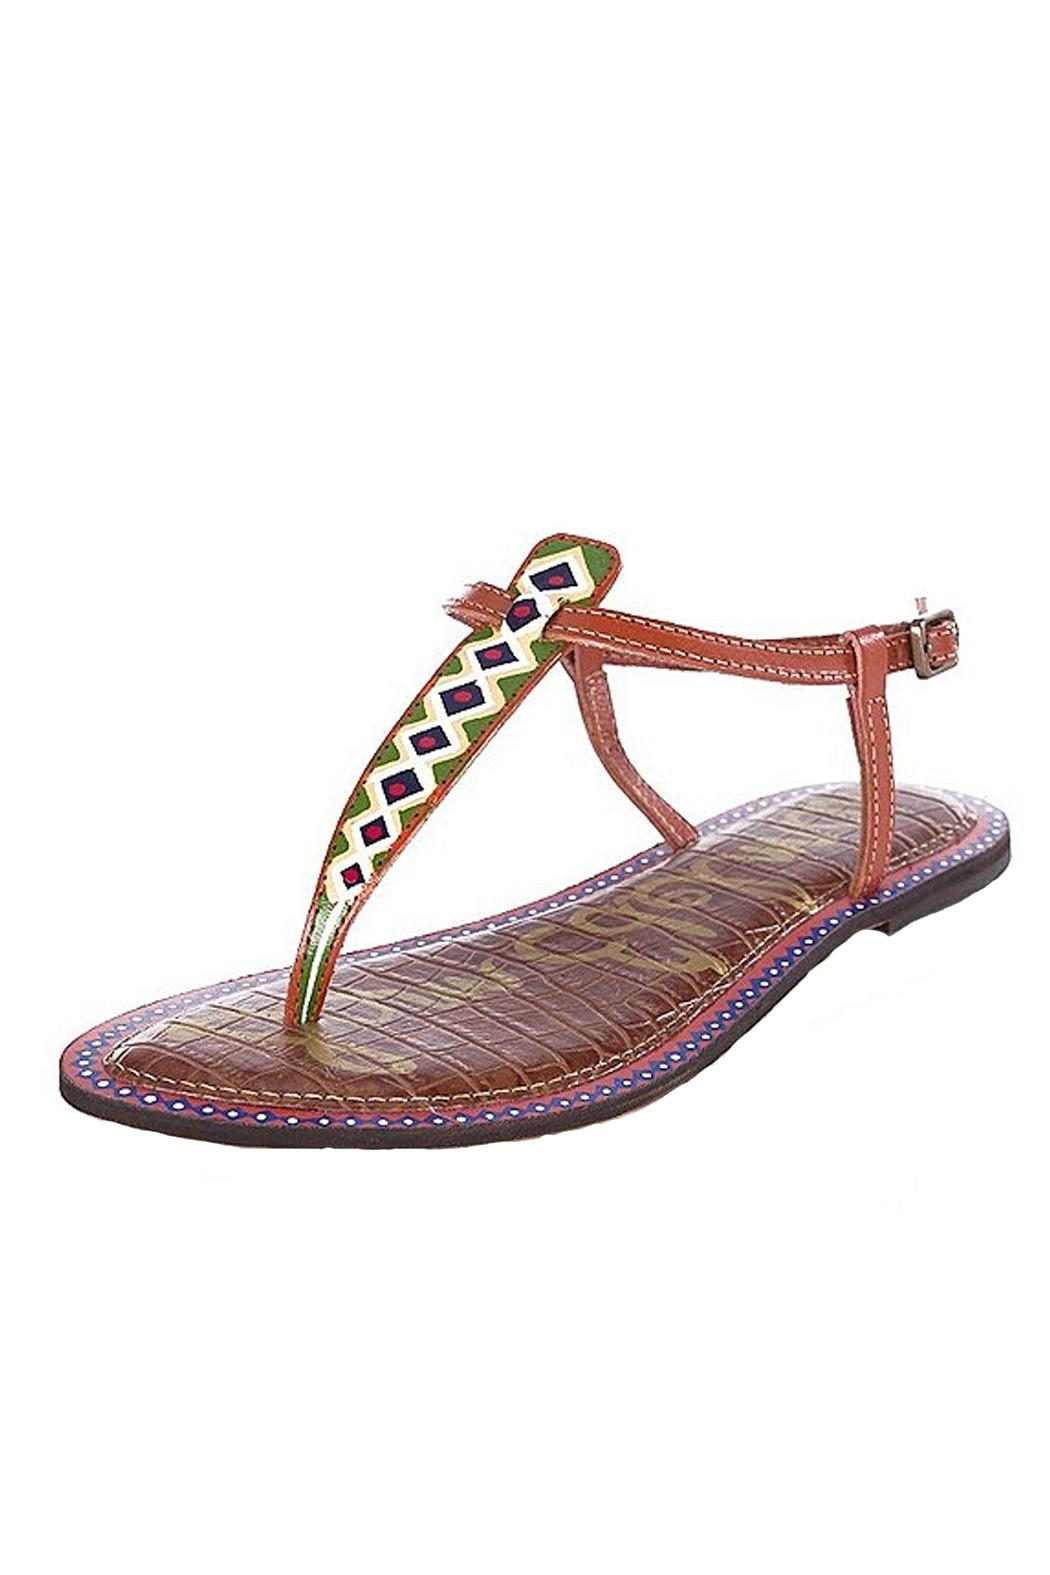 Sam Edelman Tribal Sandal - Main Image